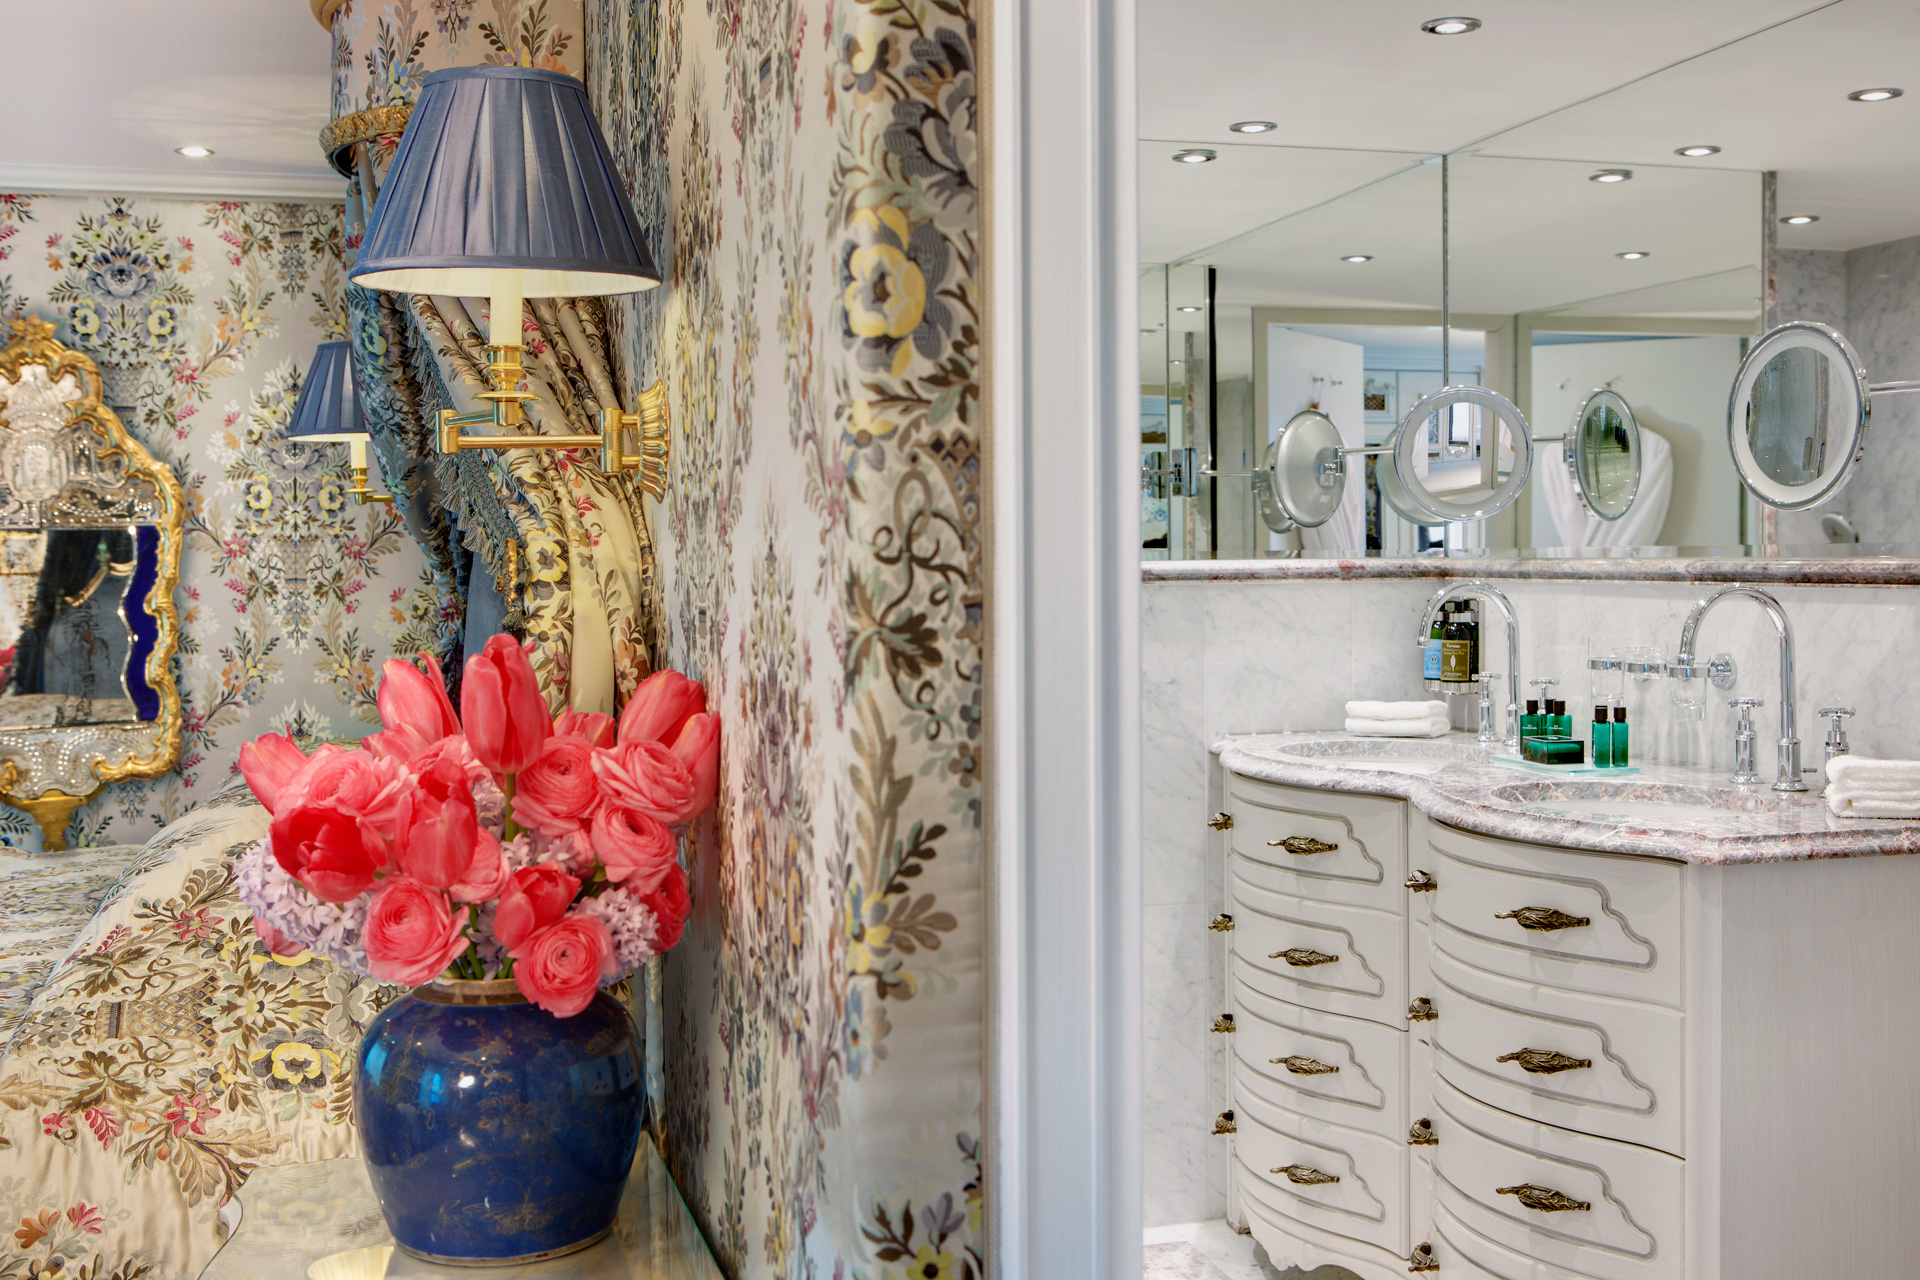 UNIWORLD Boutique River Cruises SS Maria Theresa Accommodation Suite Bathroom 2.jpg